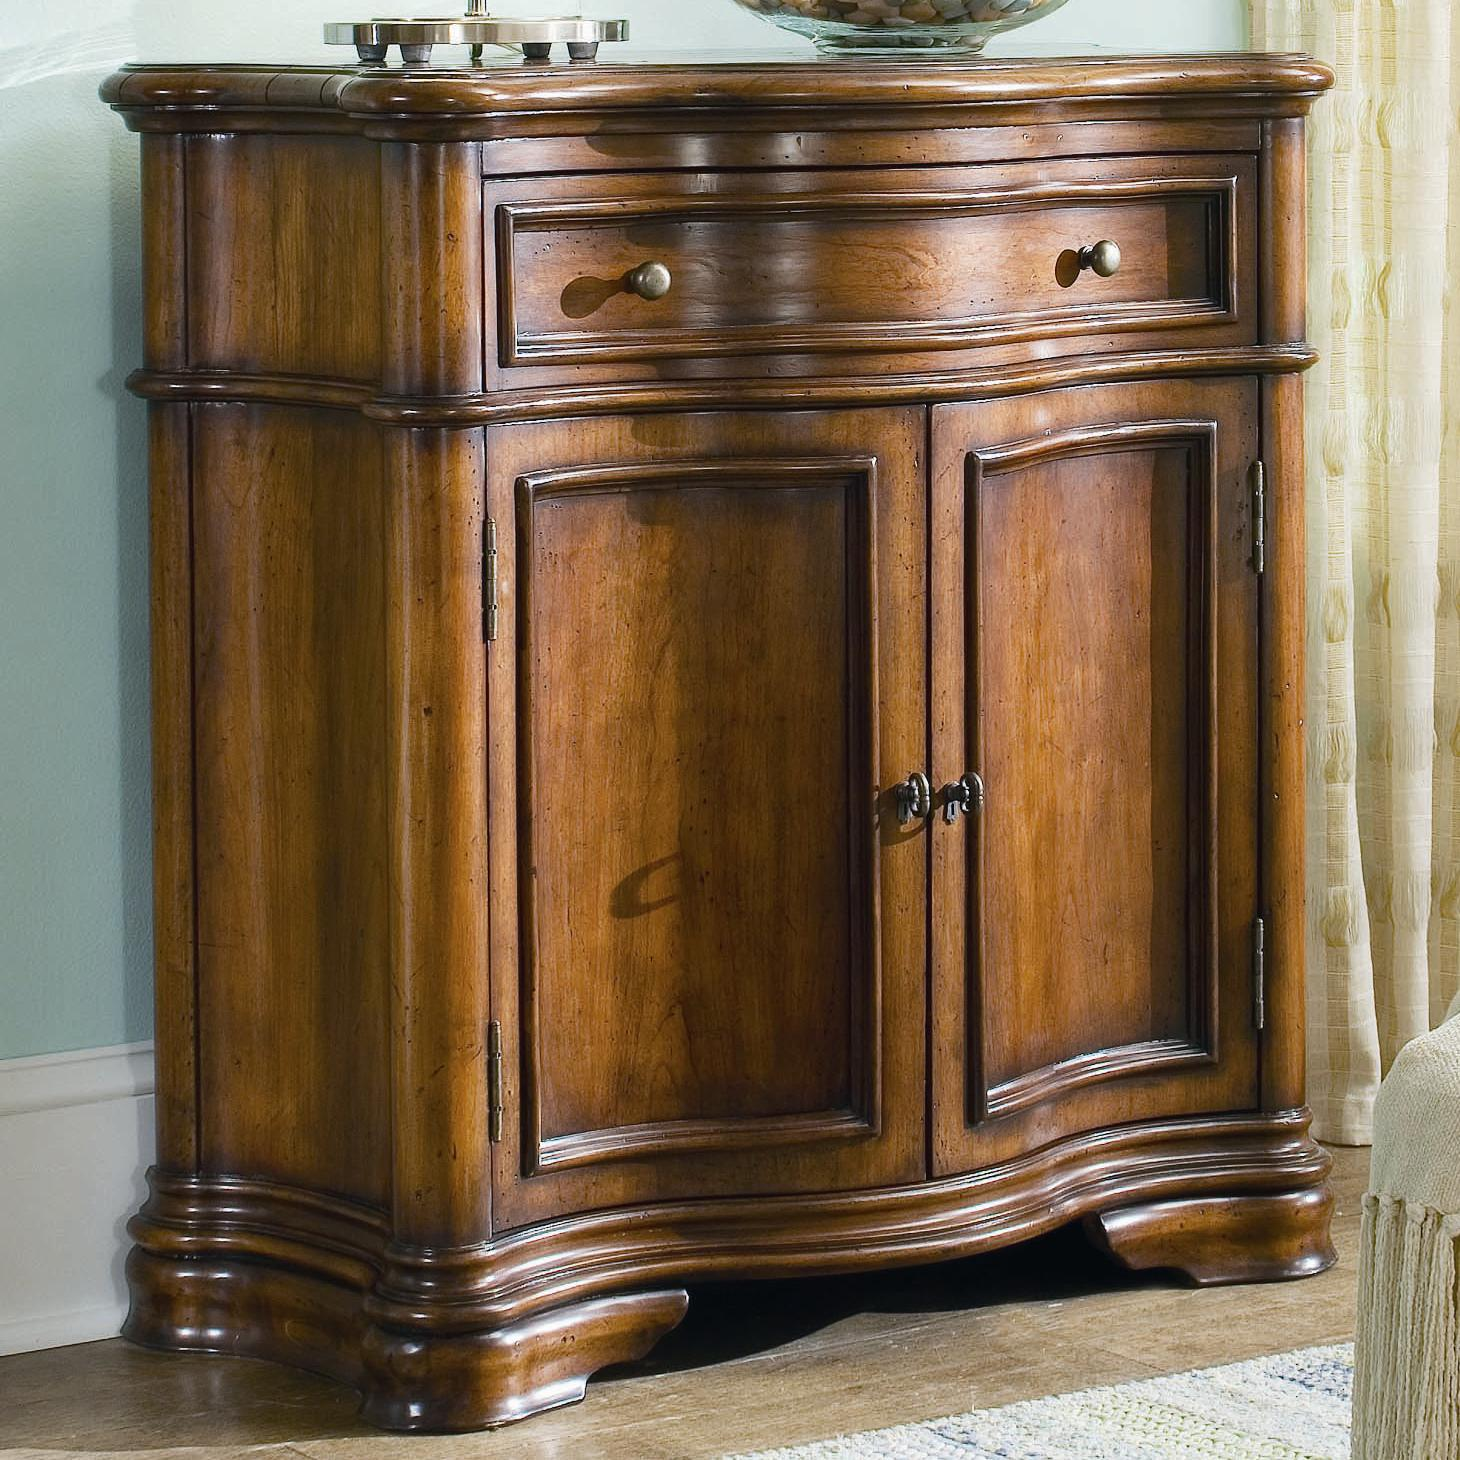 Hooker Furniture Waverly Place Waverly Shaped Hall Console - Item Number: 366-50-106